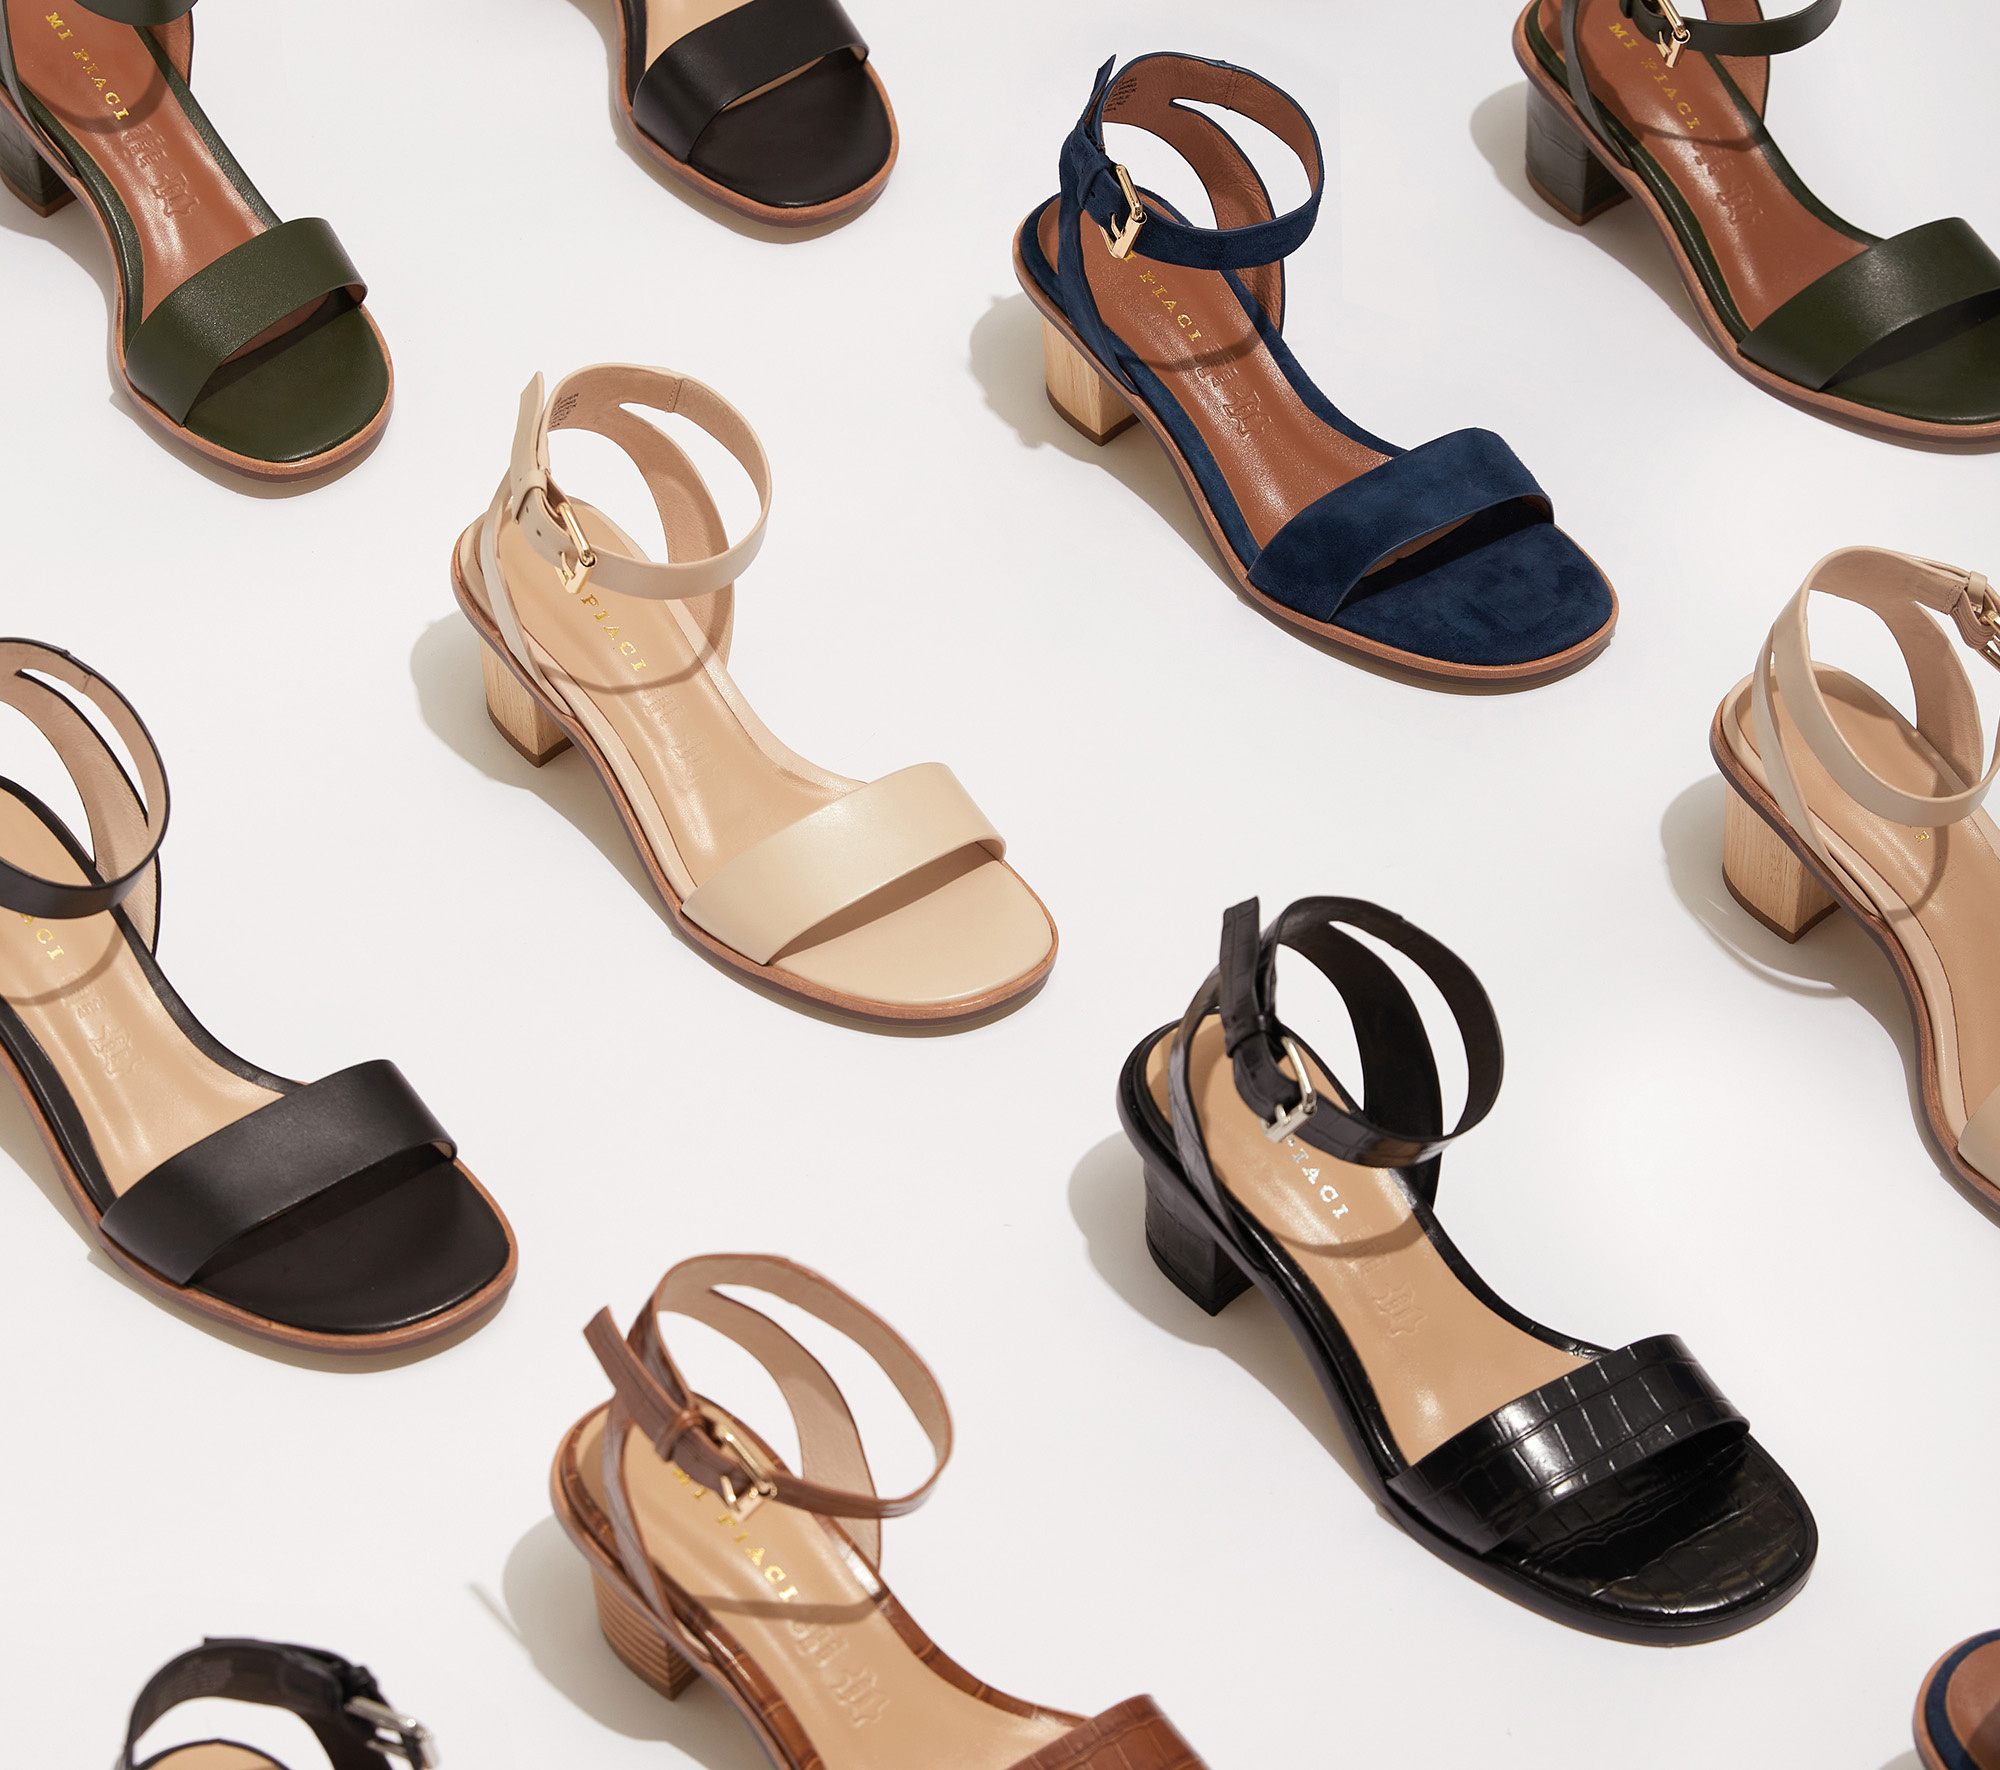 Seattle Sandal - The Icons Collection